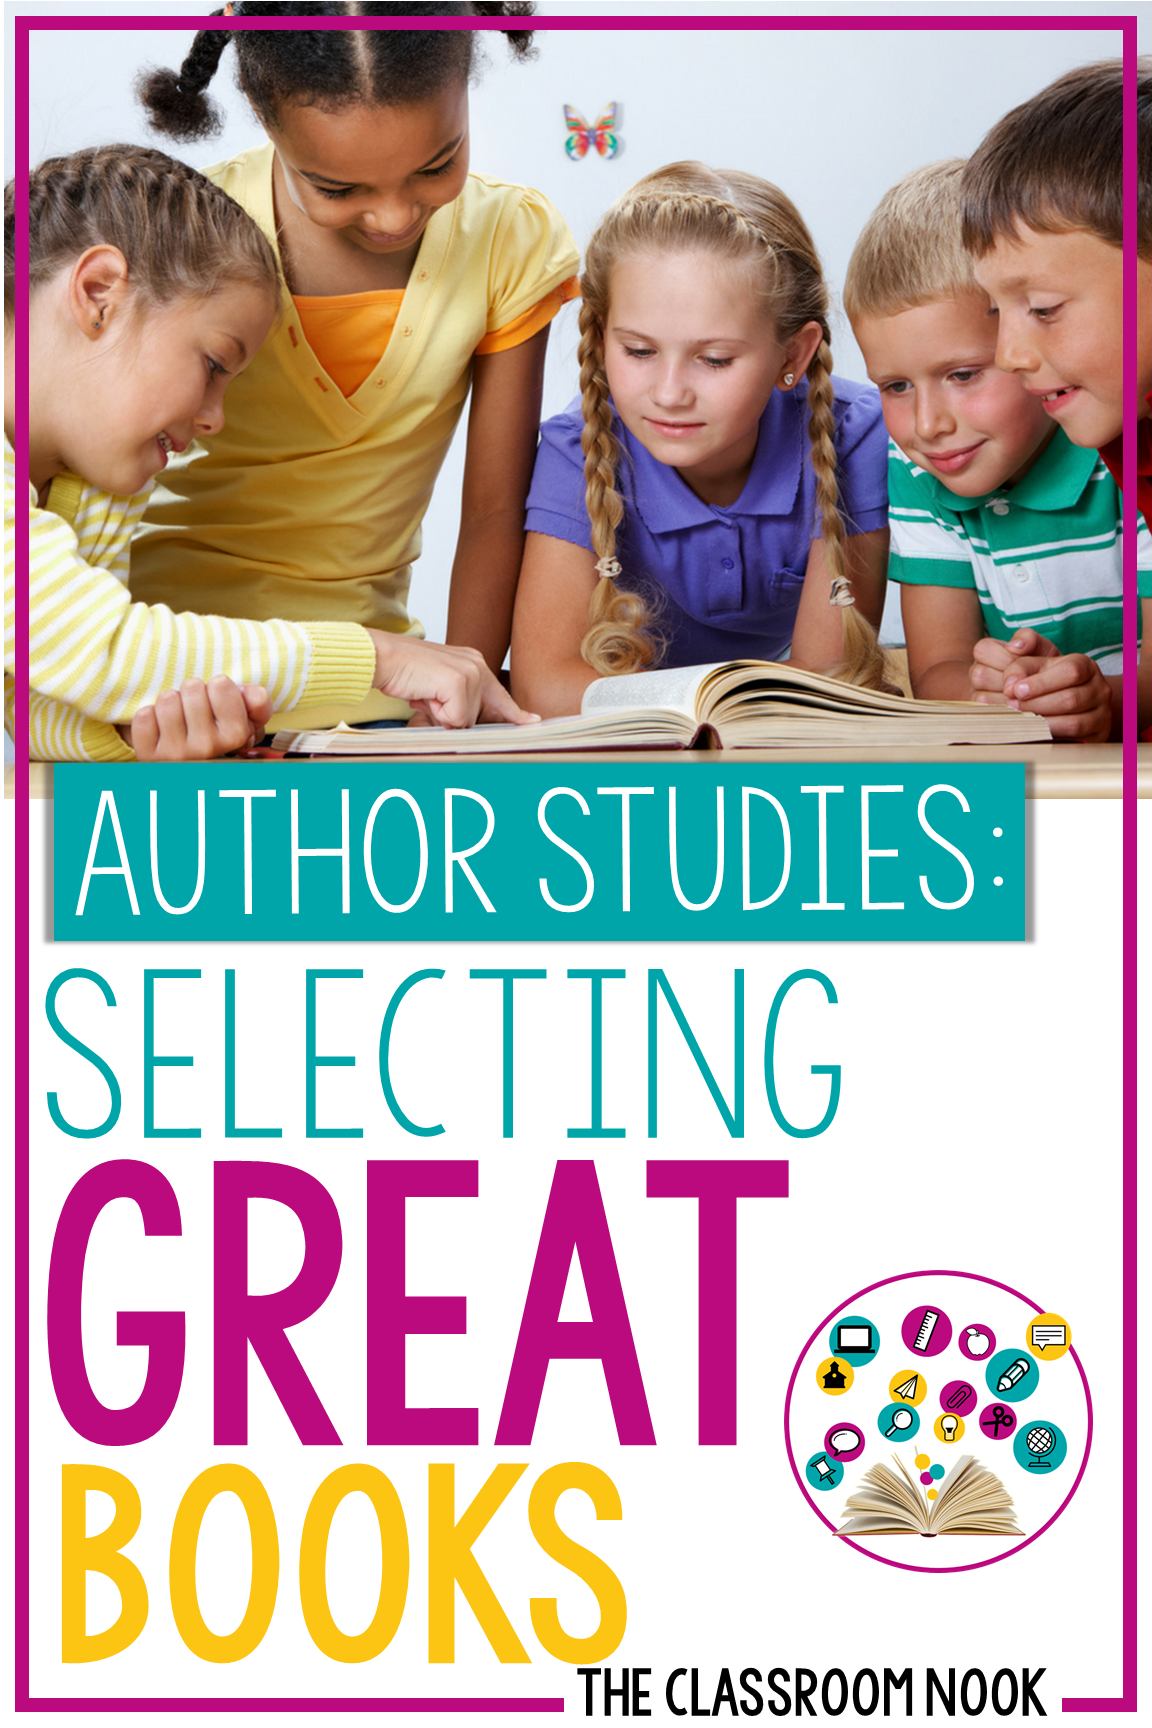 Author Study Series:  Book Selection